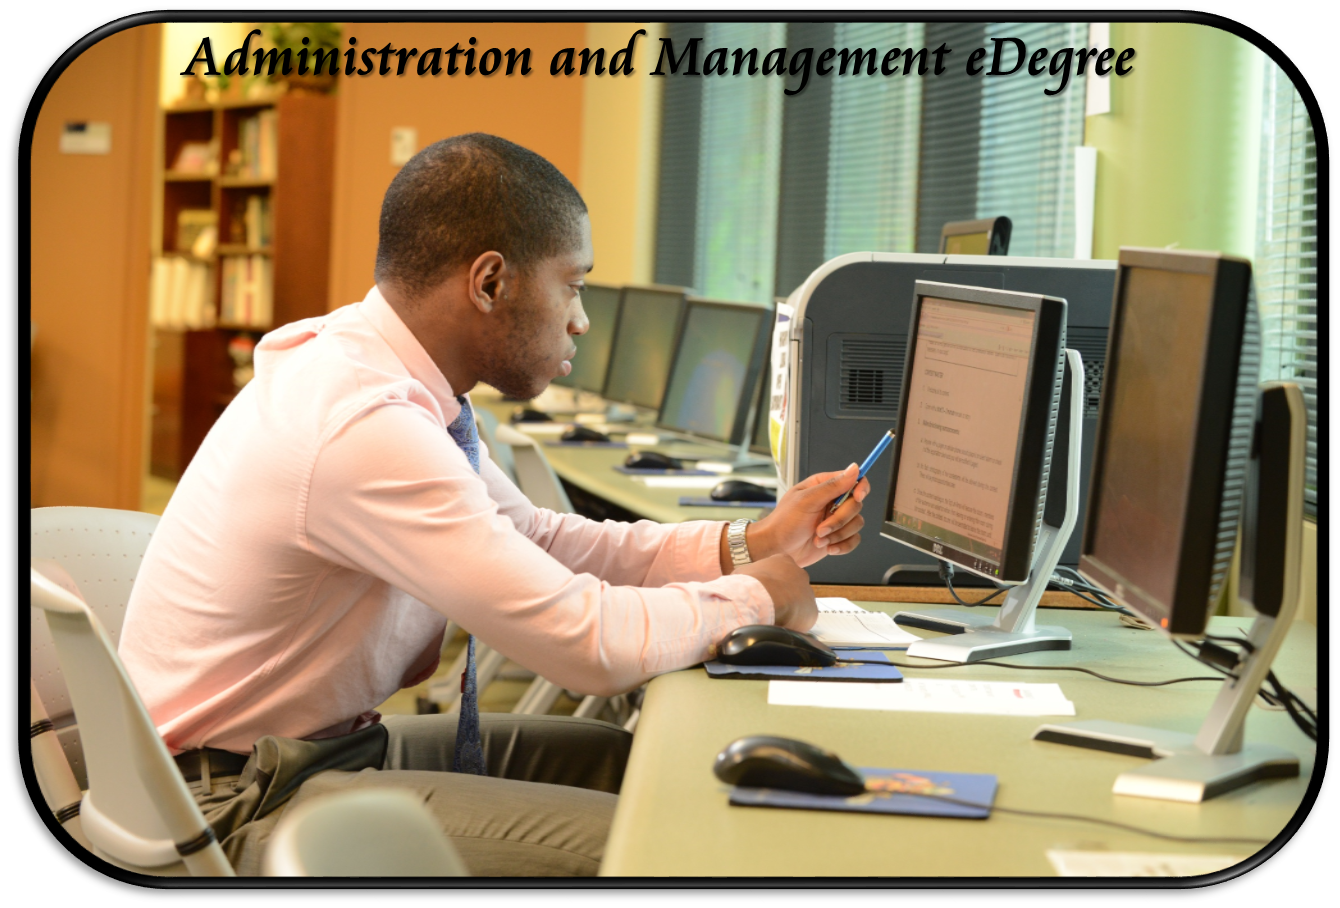 Administration and Management eDegree